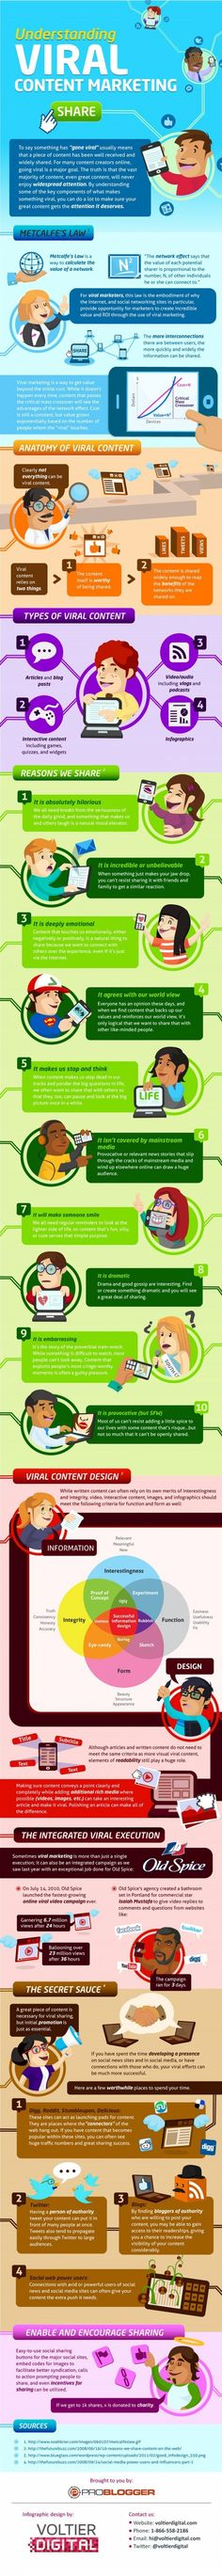 Infographic: Viral content marketing